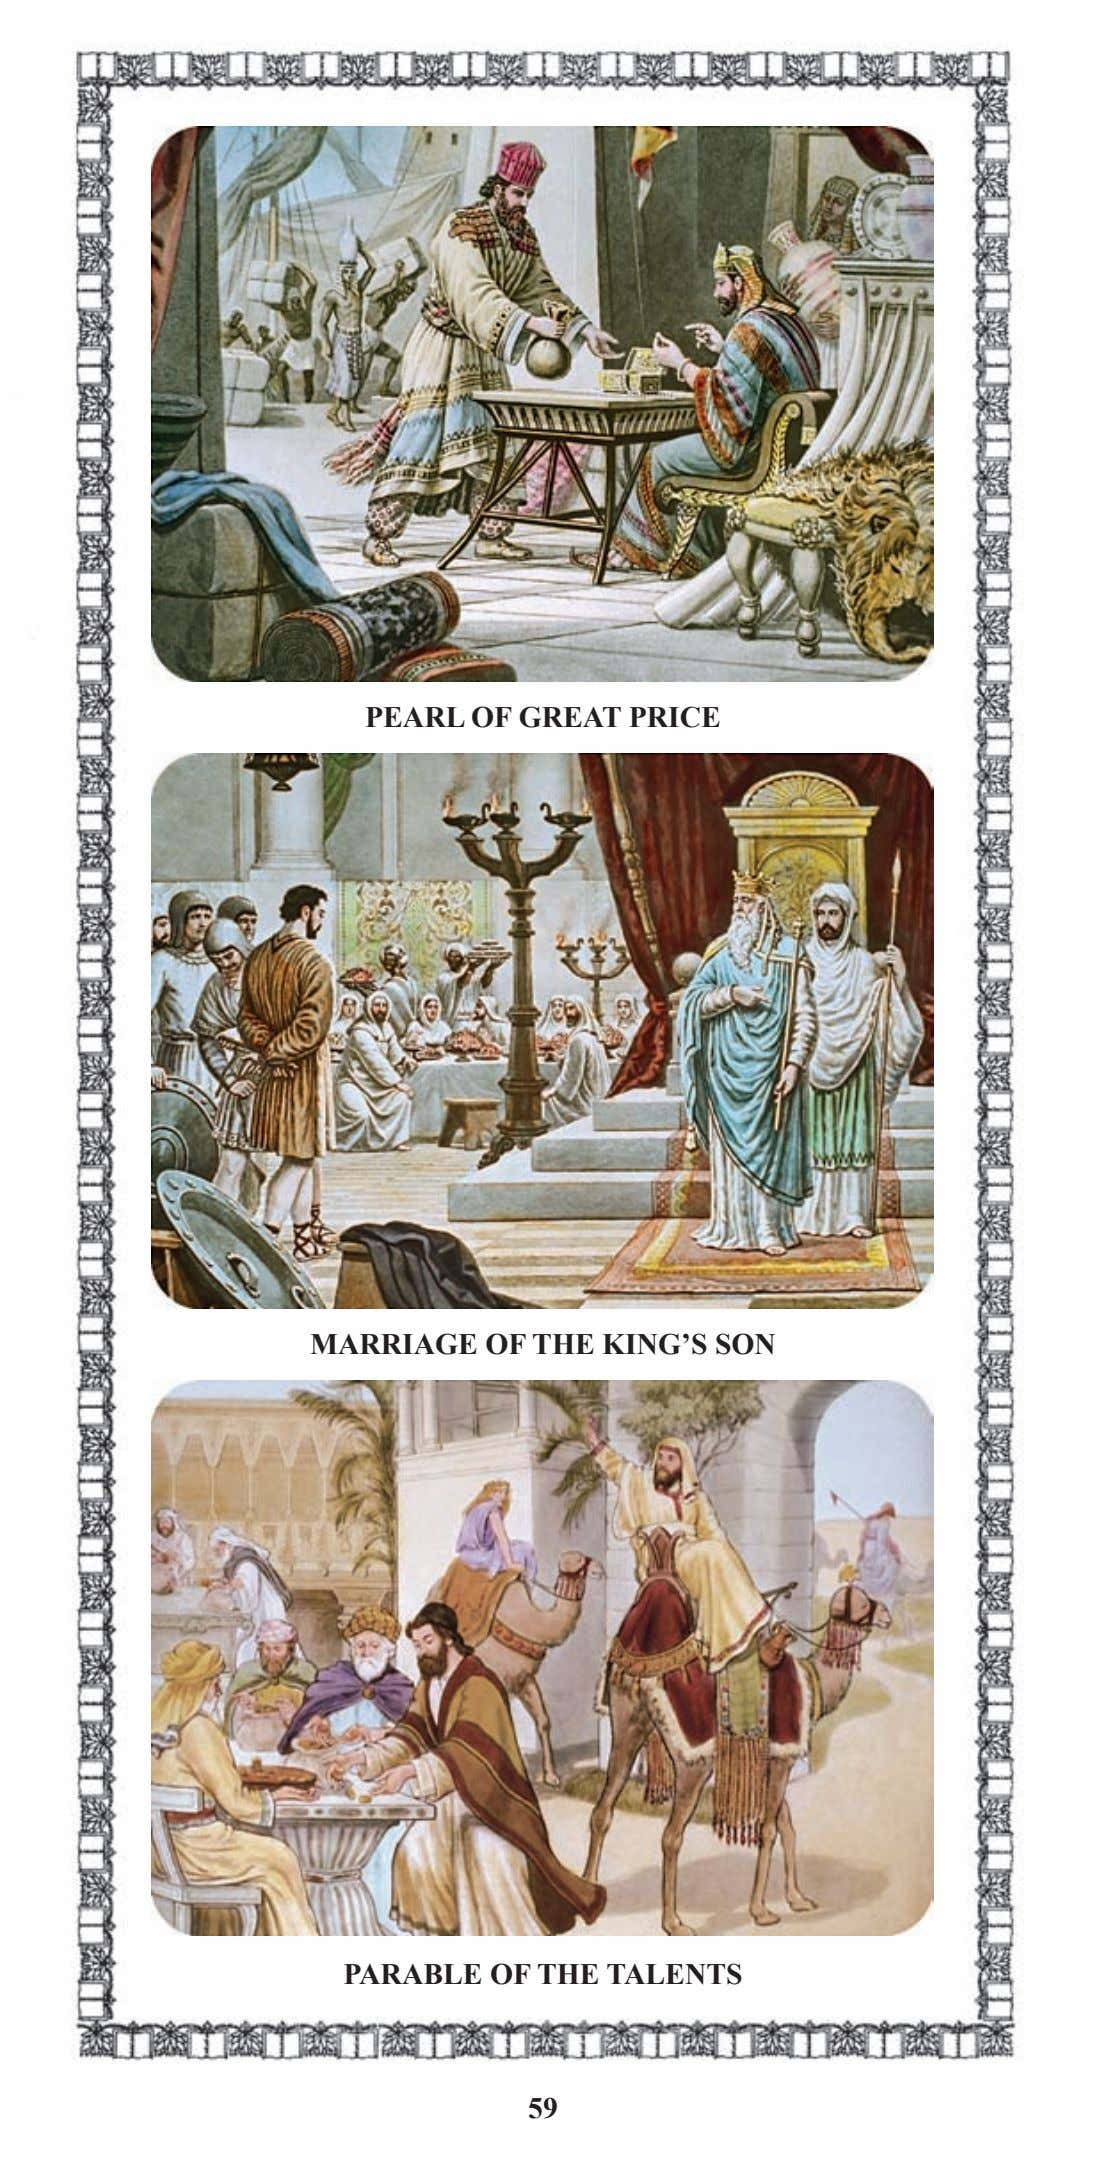 PEARL OF GREAT PRICE MARRIAGE OF THE KING'S SON PARABLE OF THE TALENTS 59